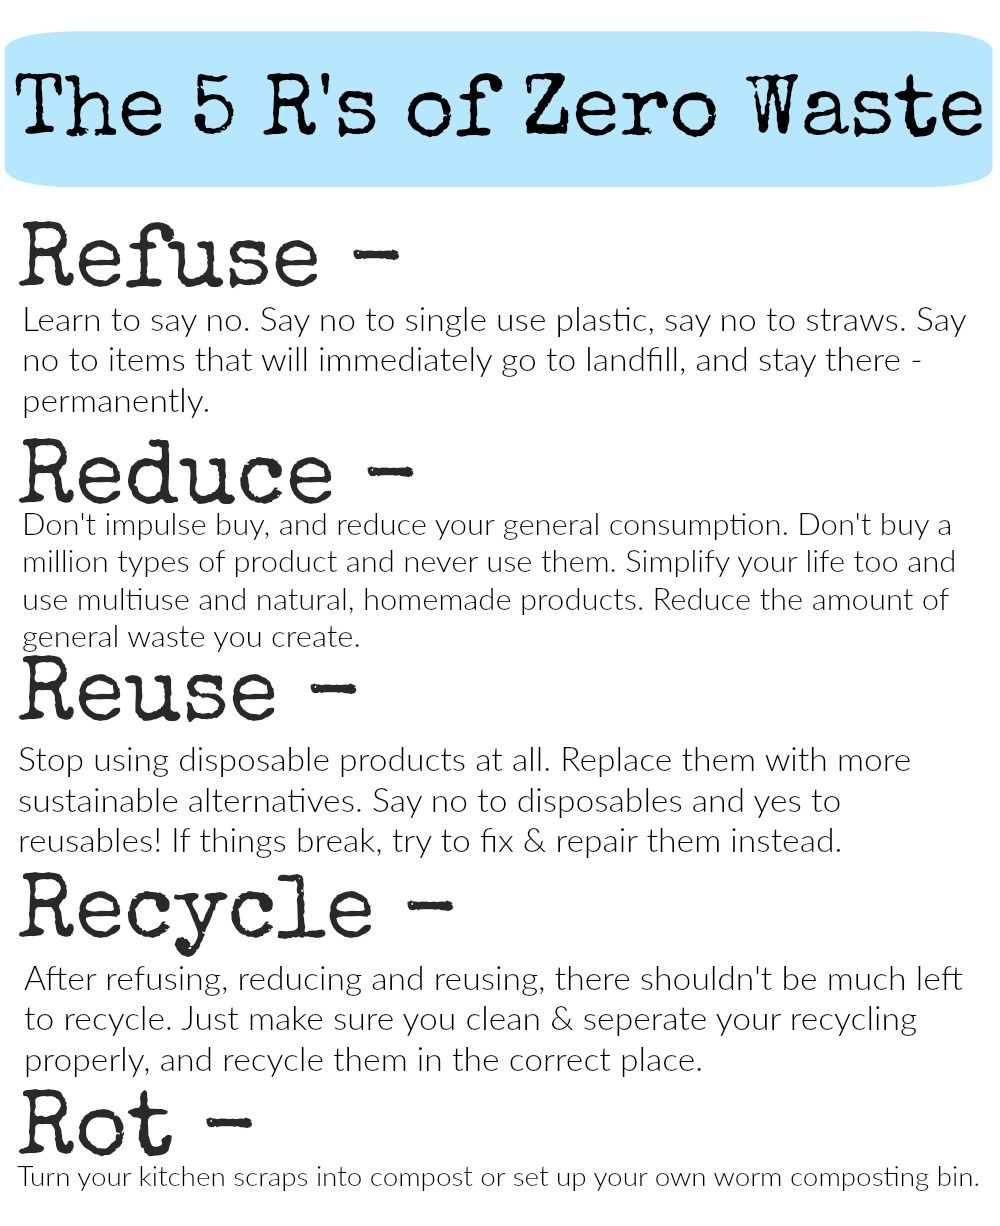 Refuse, Reduce, Reuse, Recycle, Rot, List presentation with summaries of each